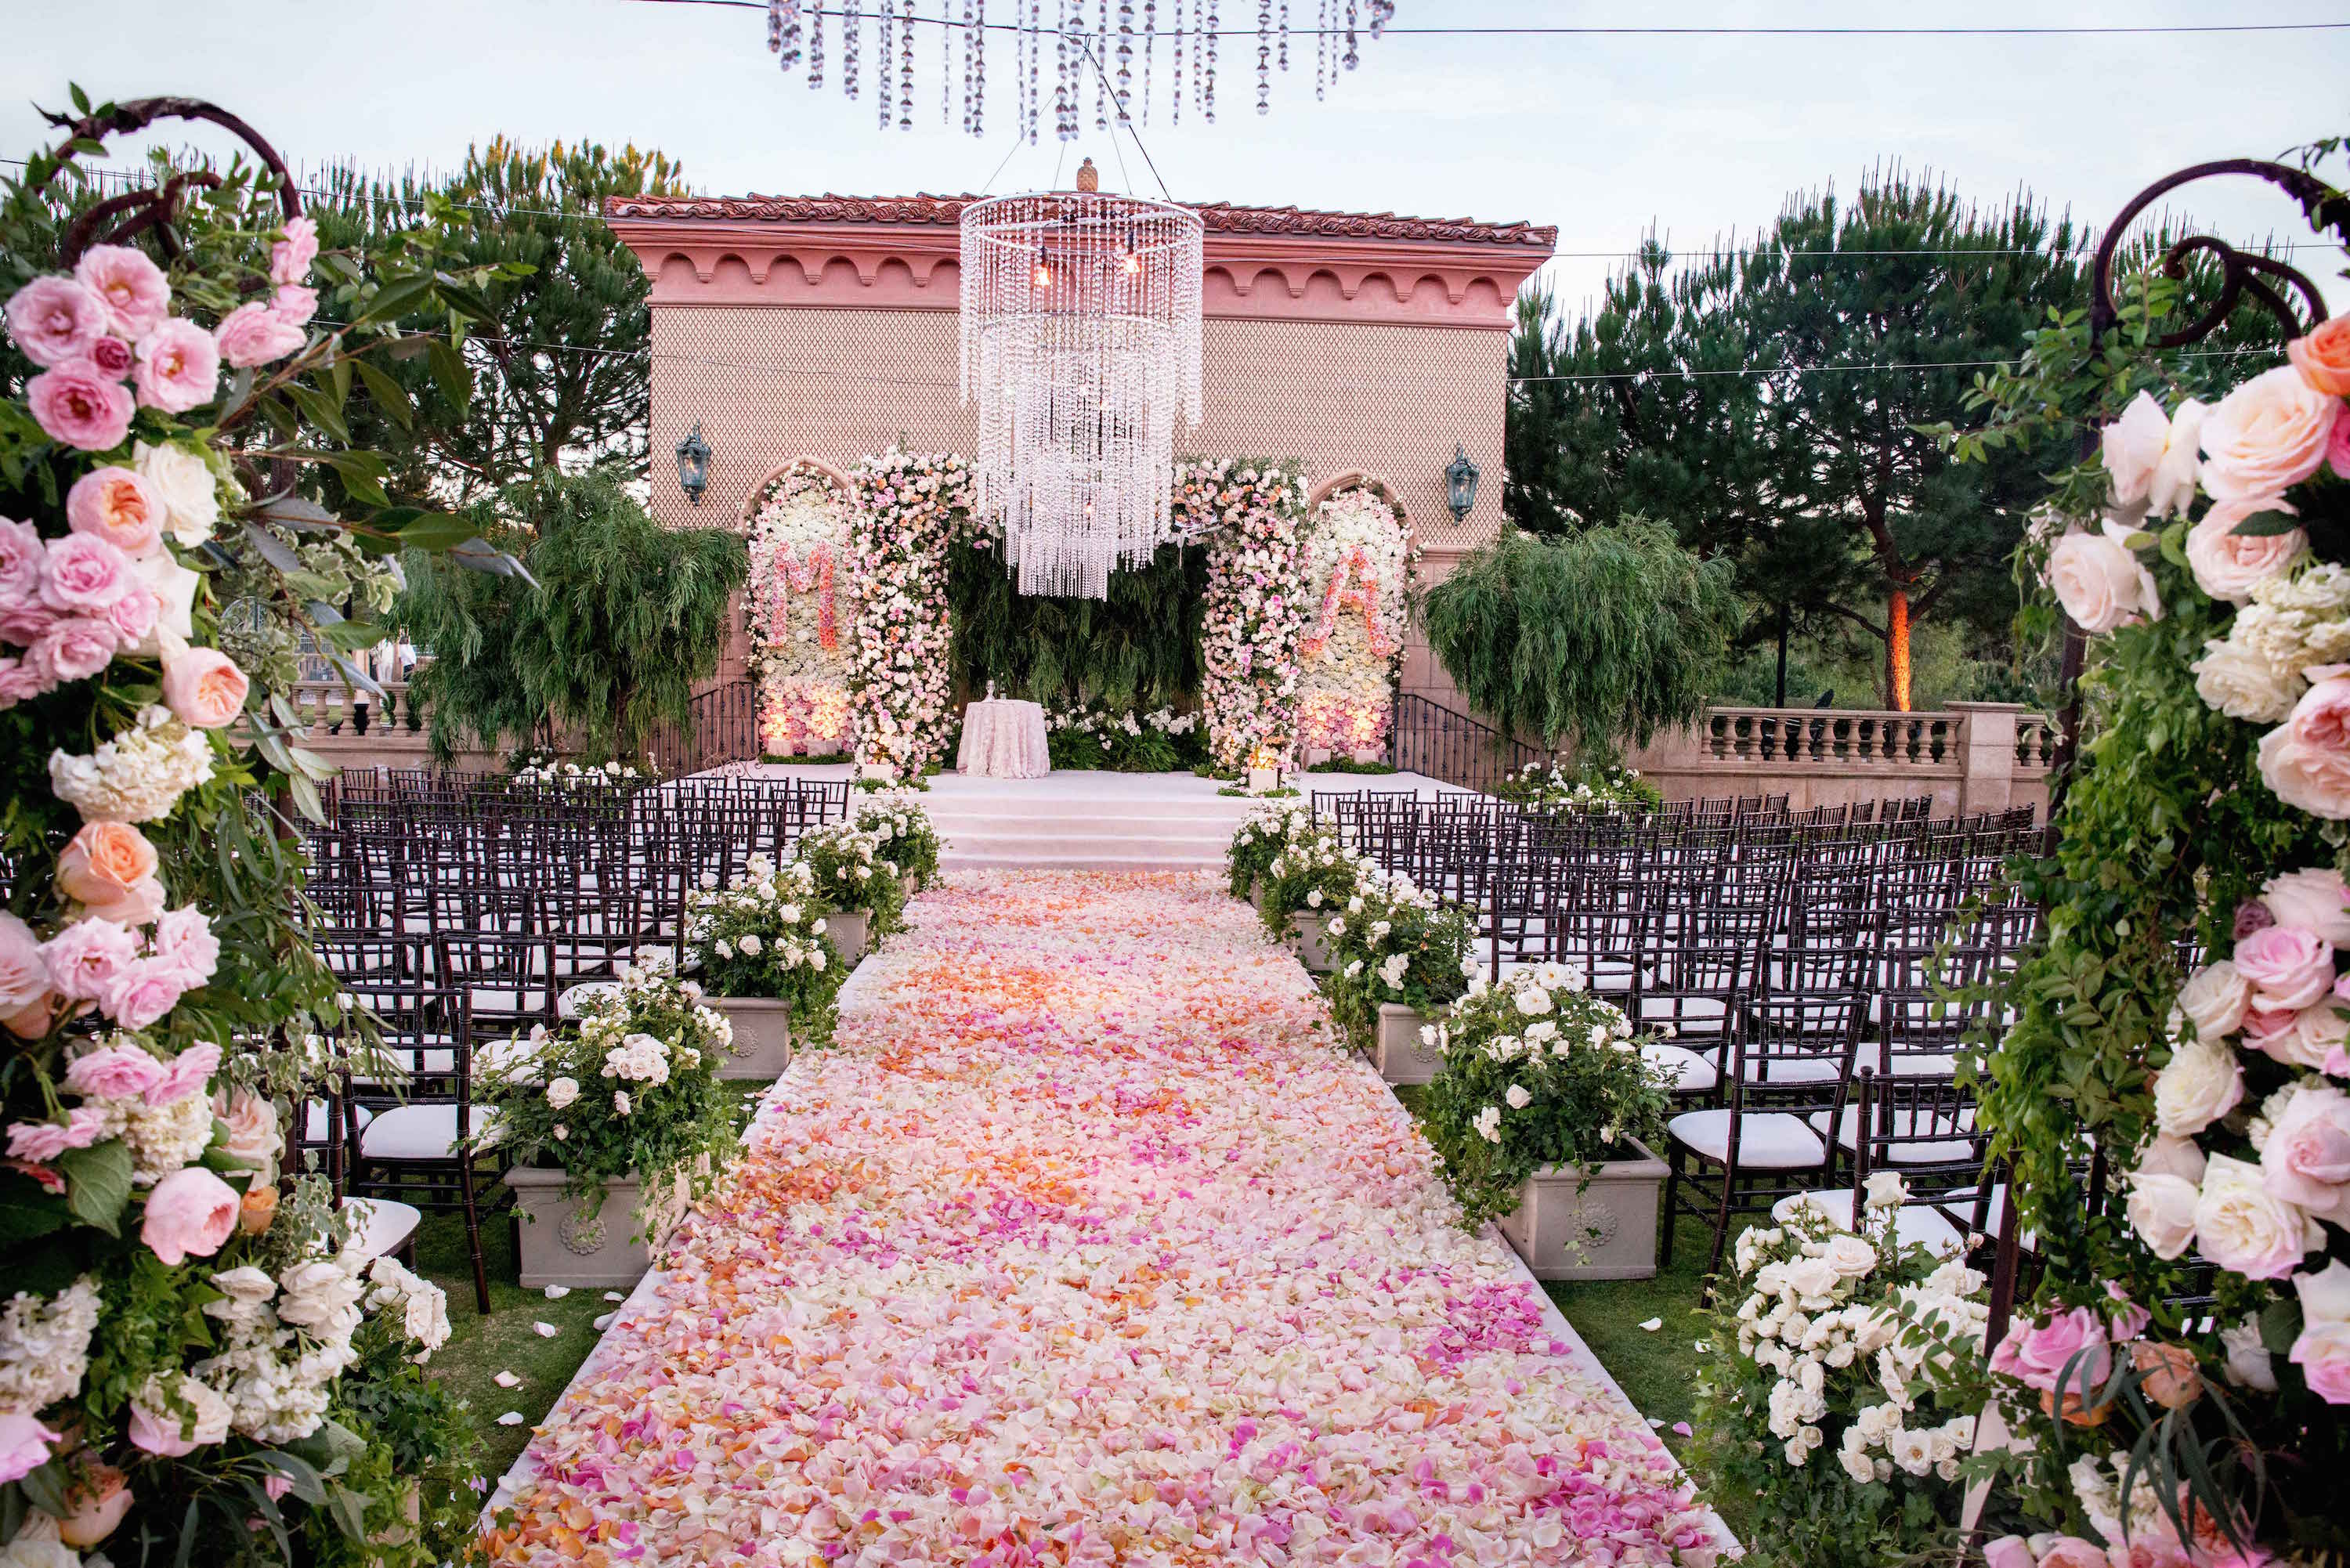 Wedding ideas beautiful ceremony floral aisle runner designs ethereal floral aisle runners to make you swoon junglespirit Image collections